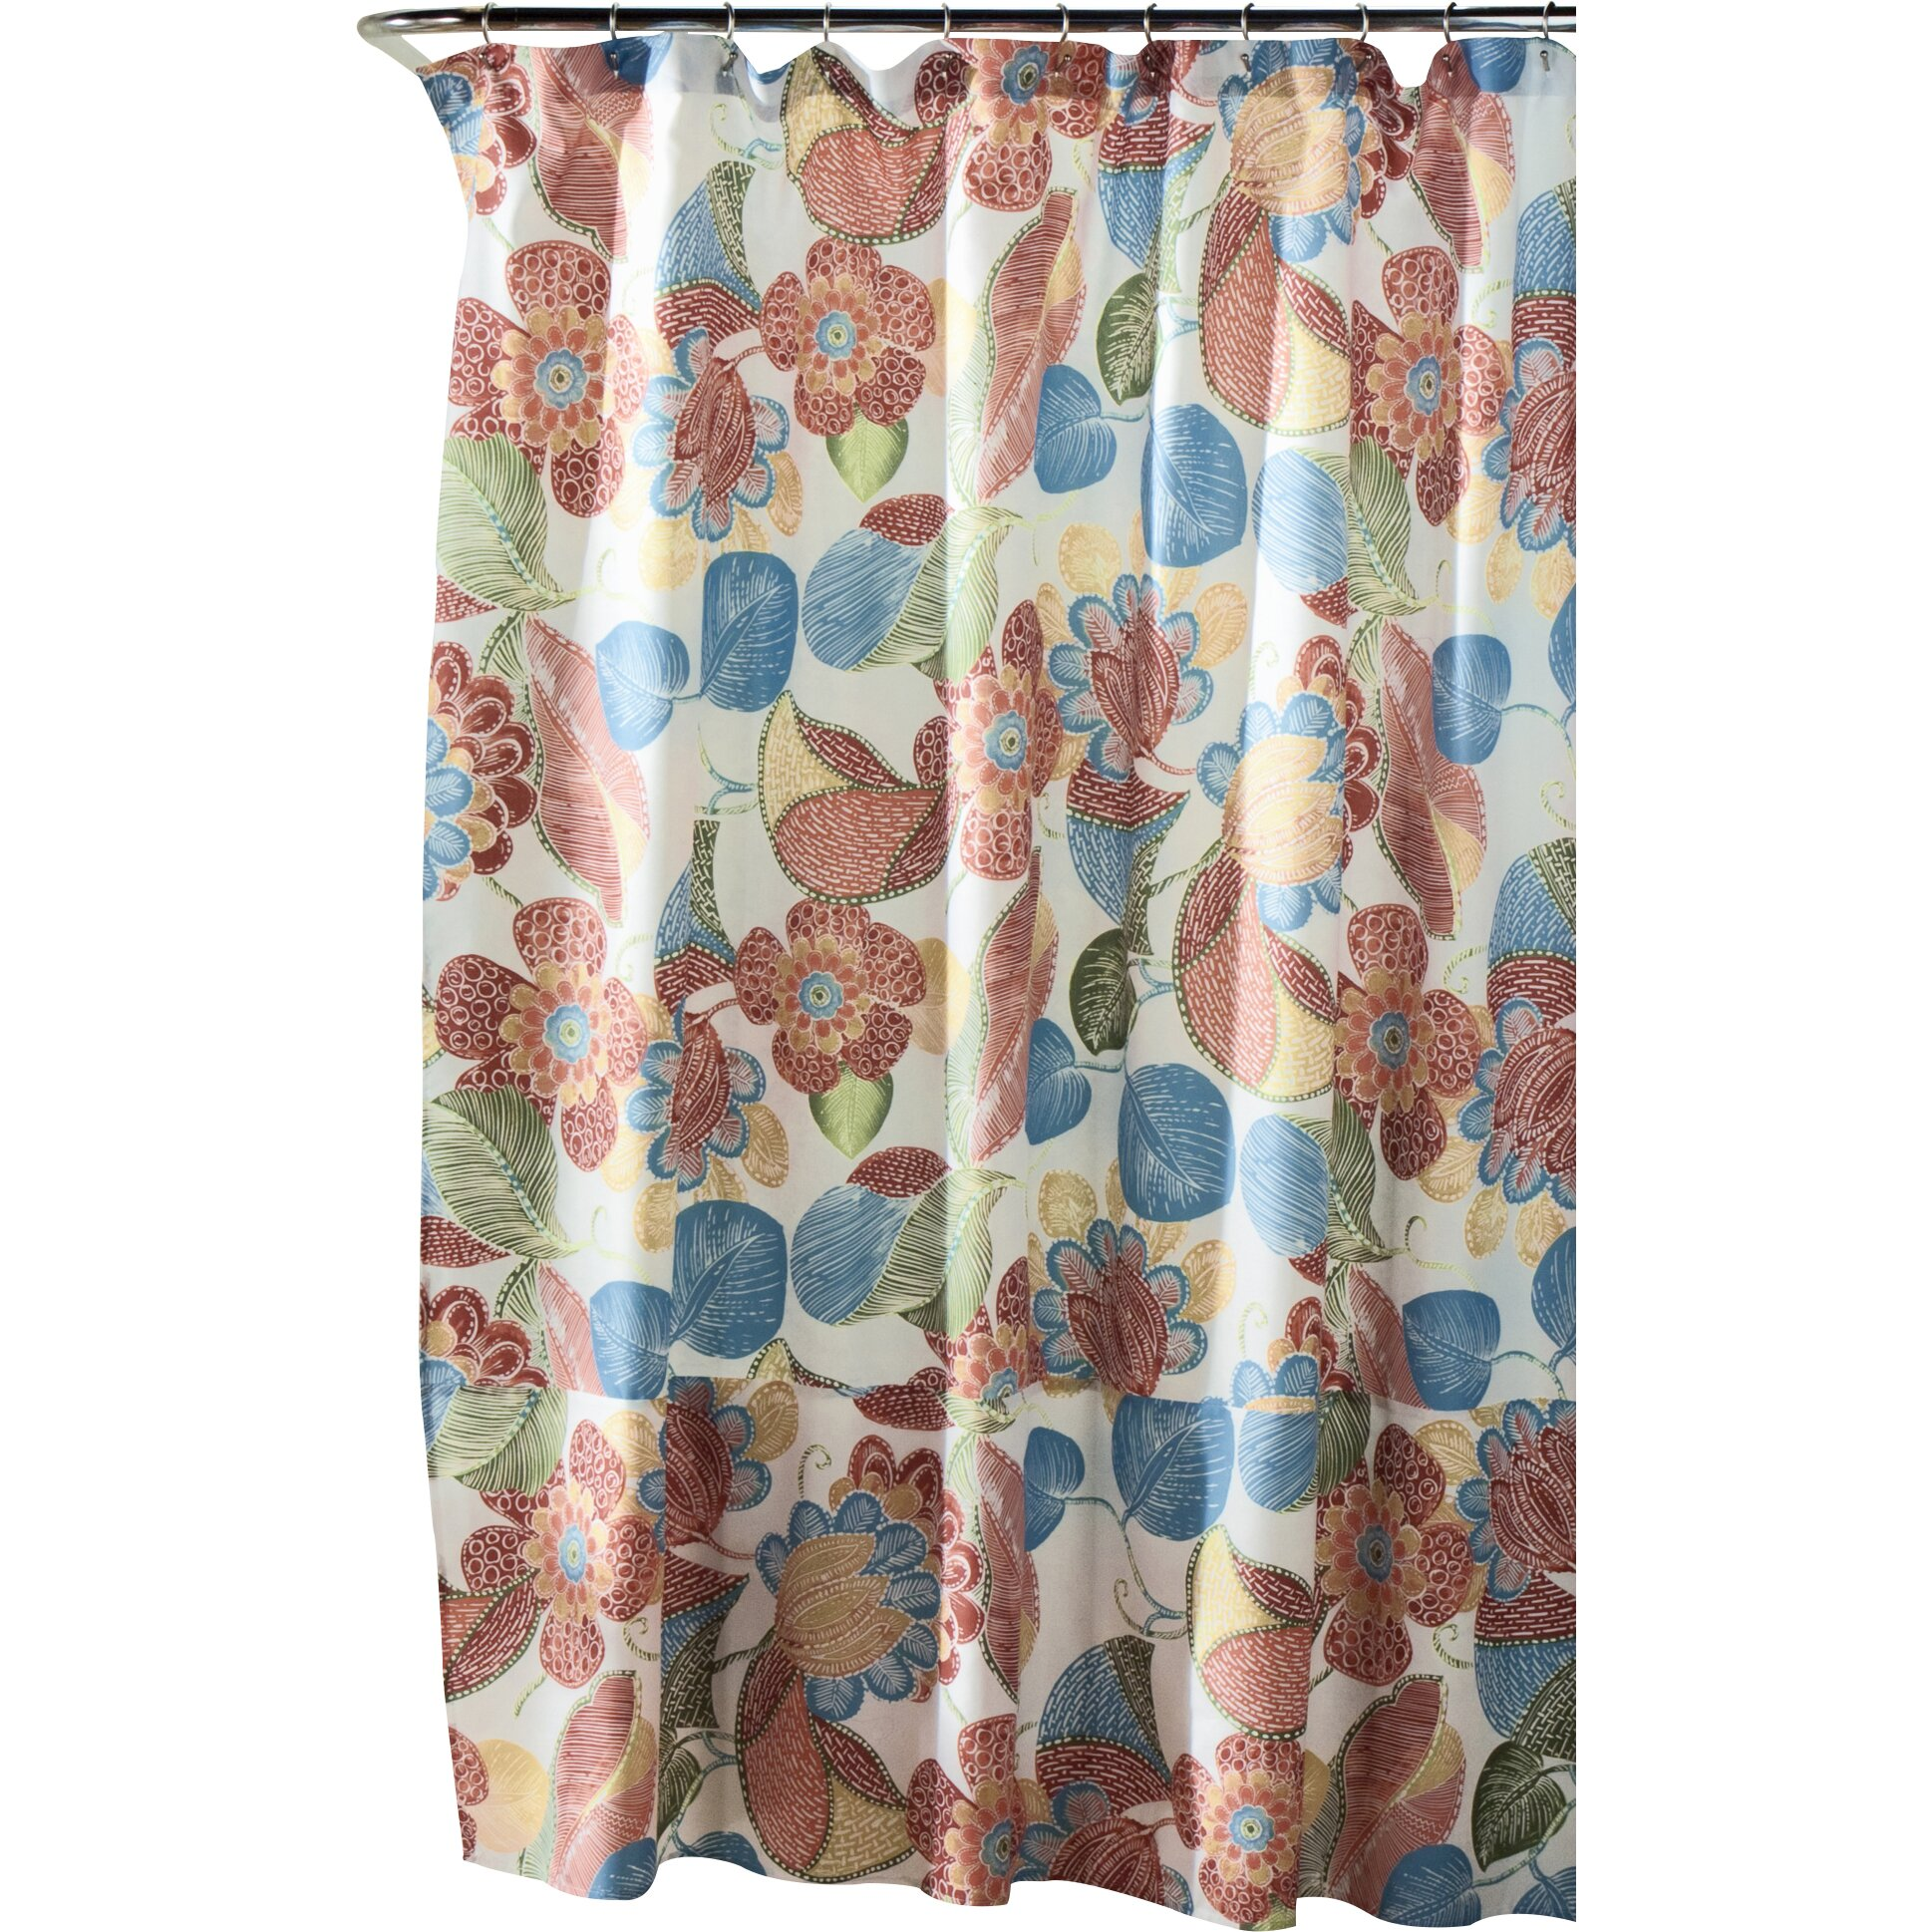 Mistana Carnuel Polyester Shower Curtain  Reviews Wayfair - Brown and turquoise shower curtain